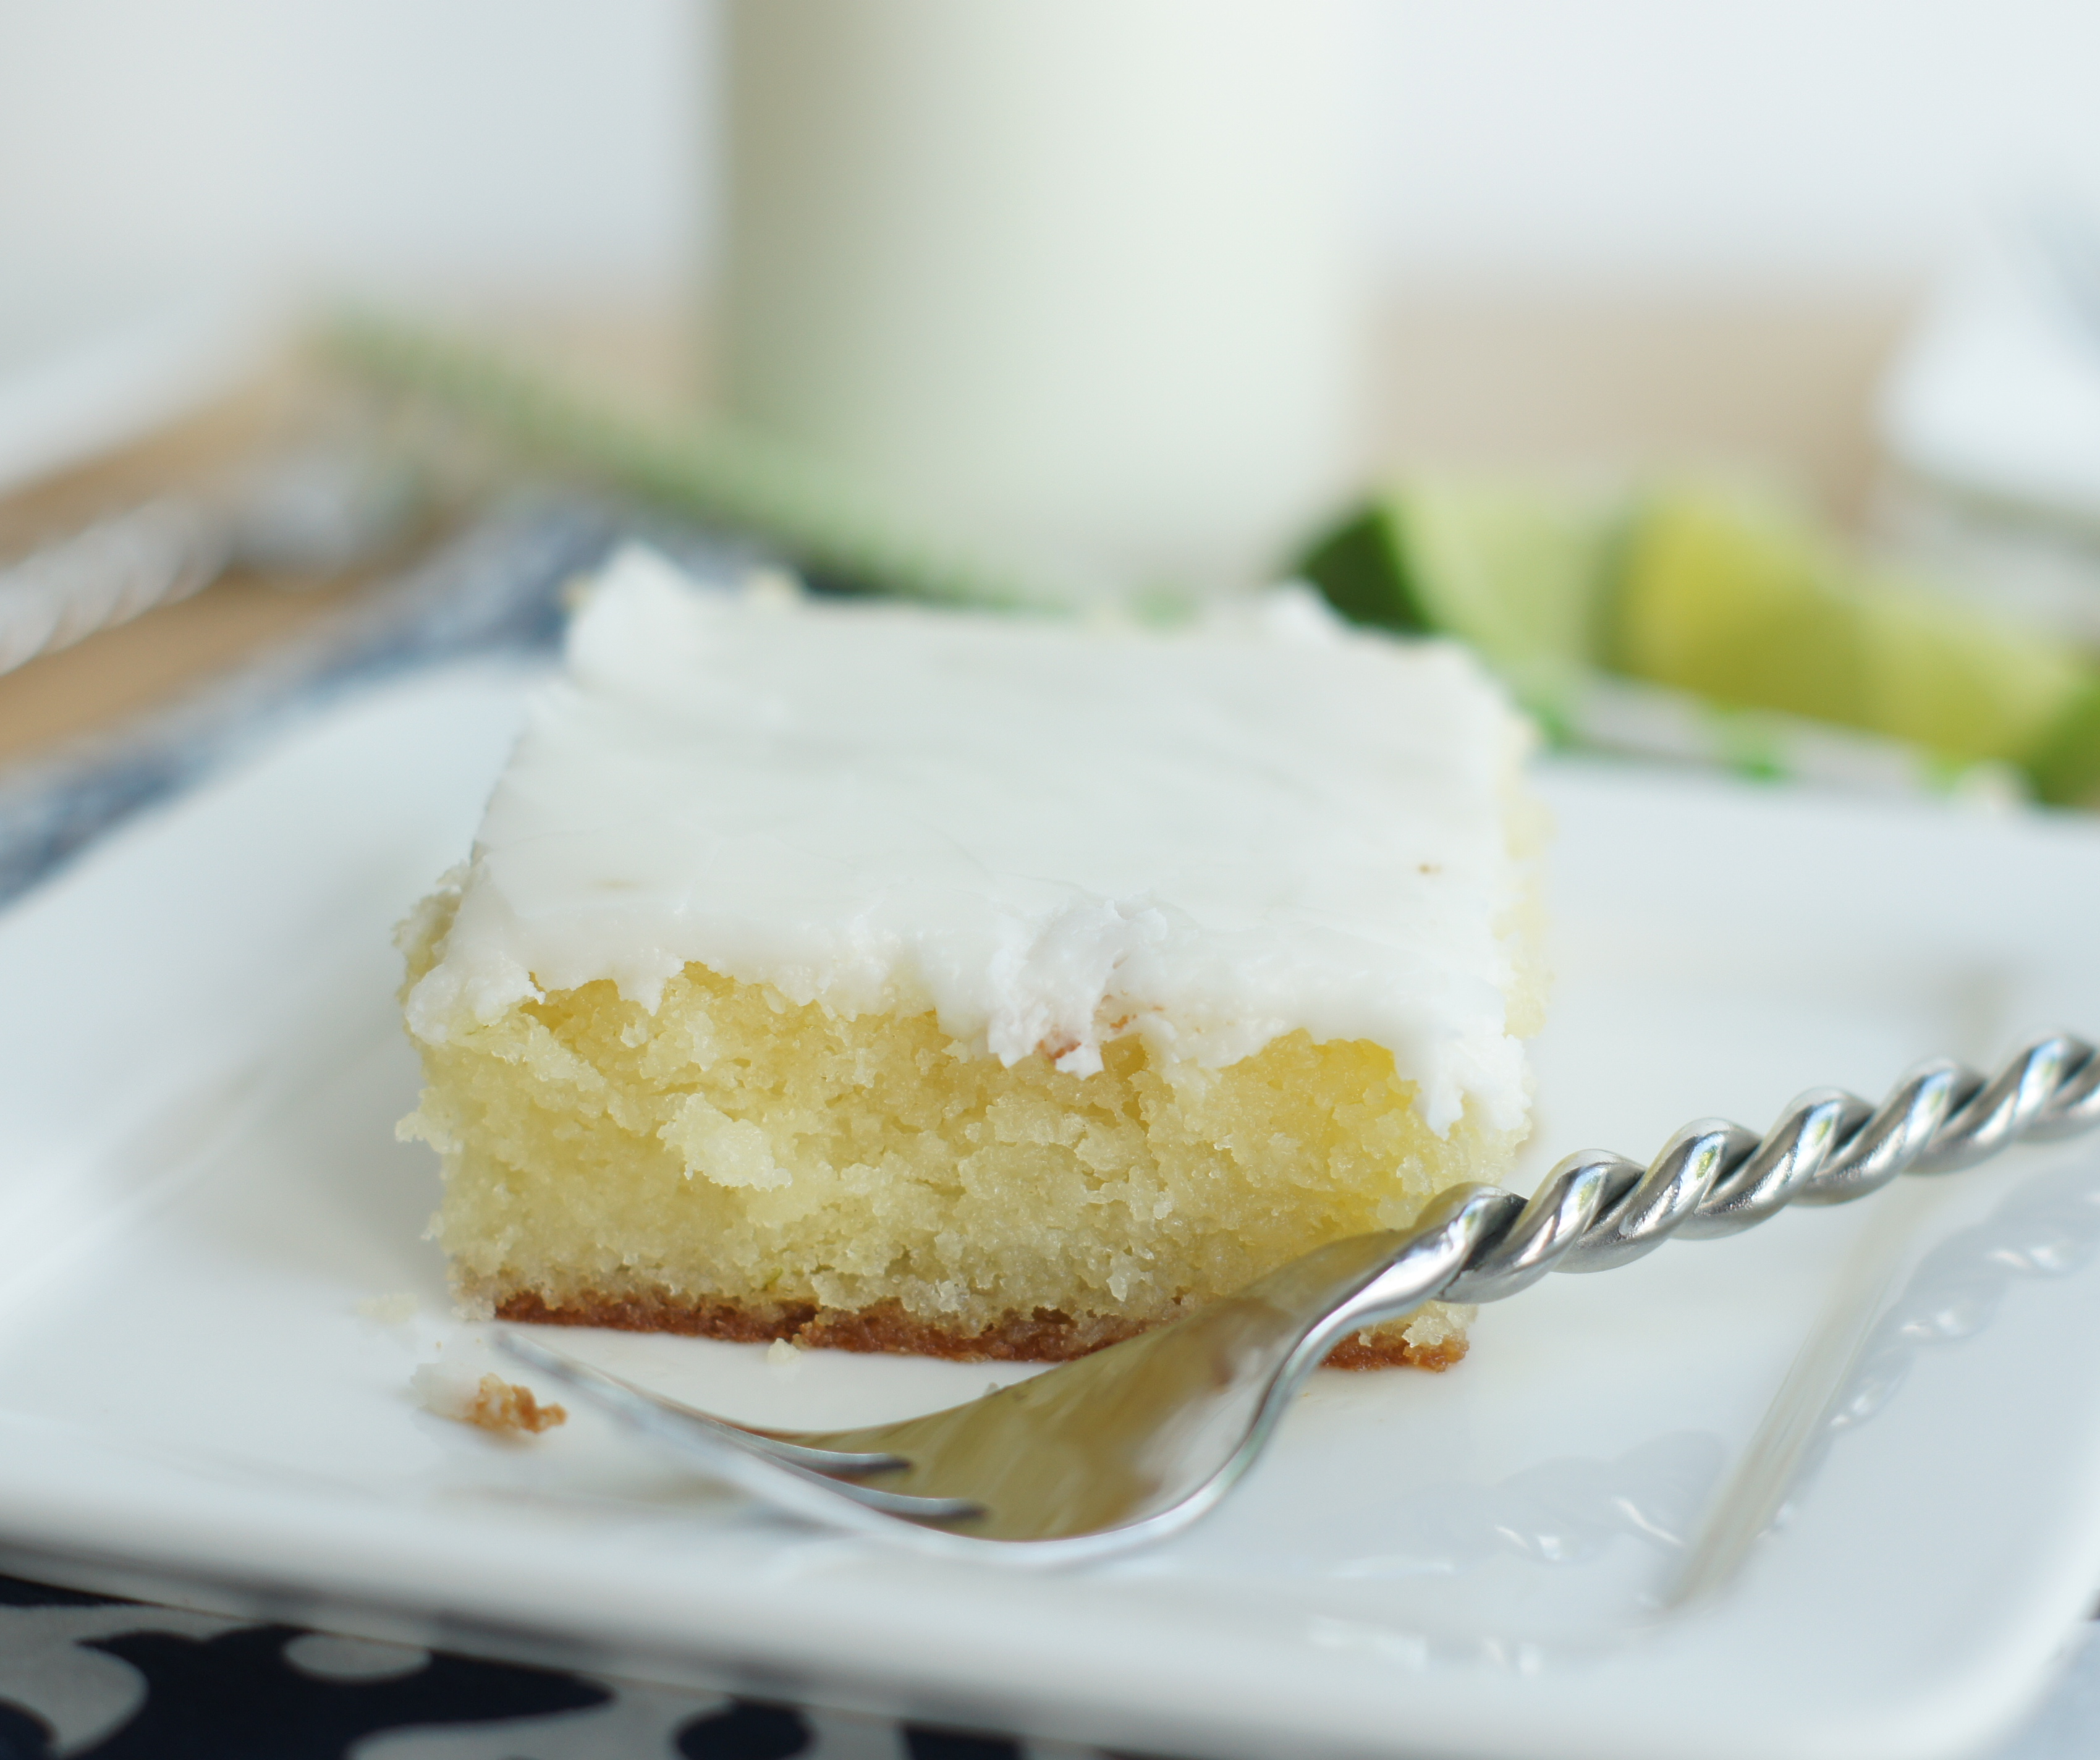 Piece of glazed lime cake on a plate